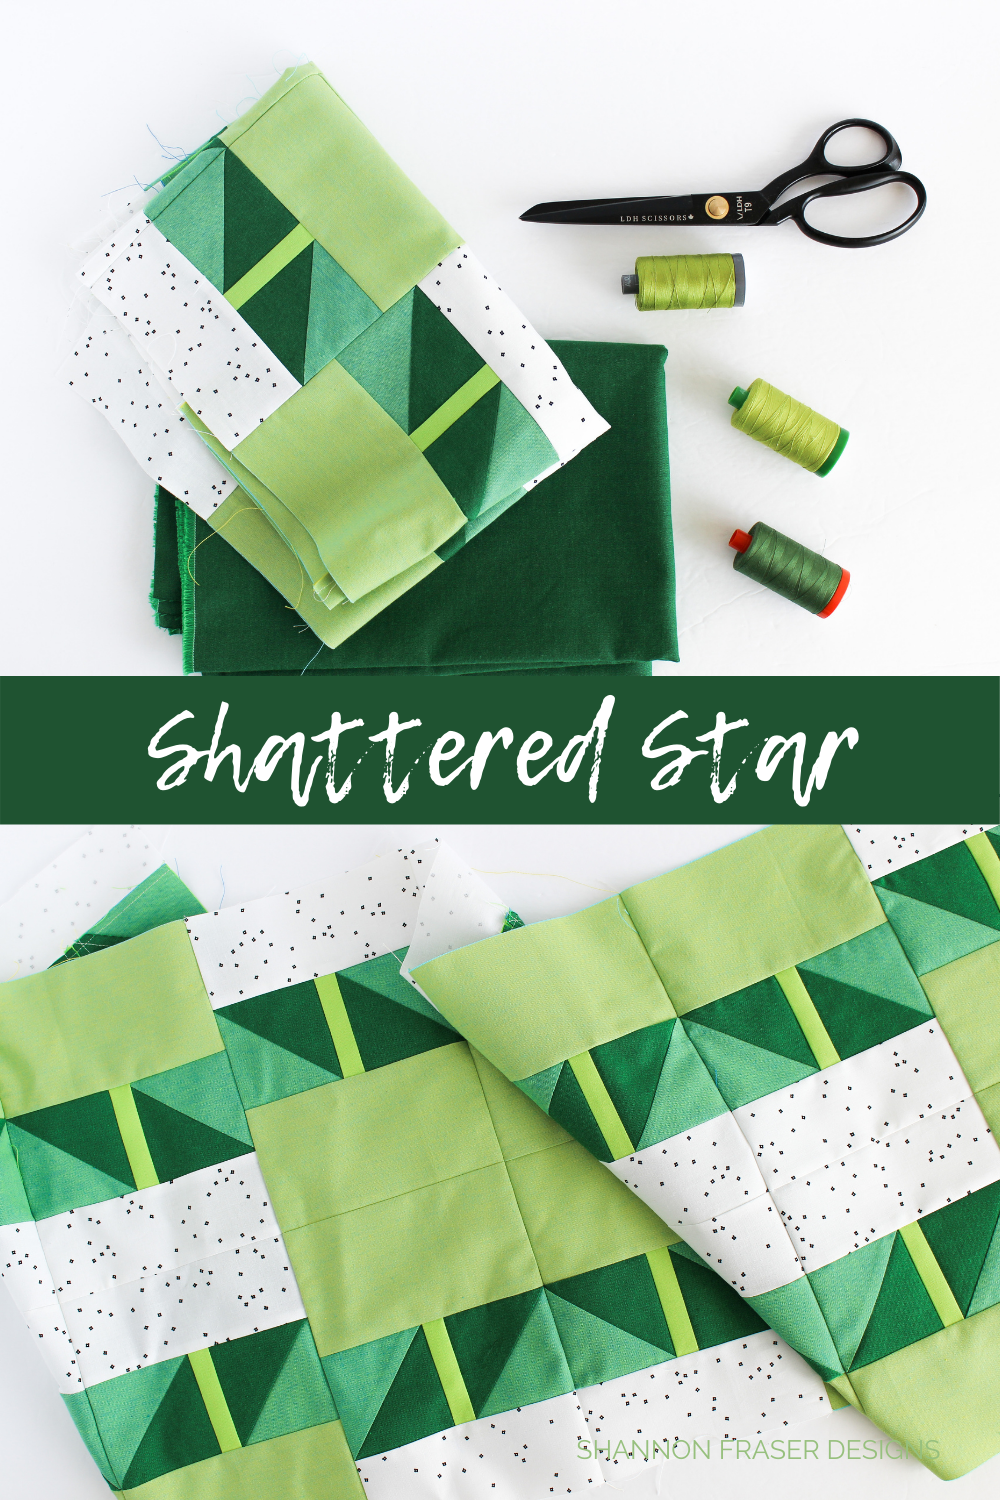 Shattered Star quilted table runner in green ombre Artisan Cottons | Modern quilt pattern by Shannon Fraser Designs #quilting